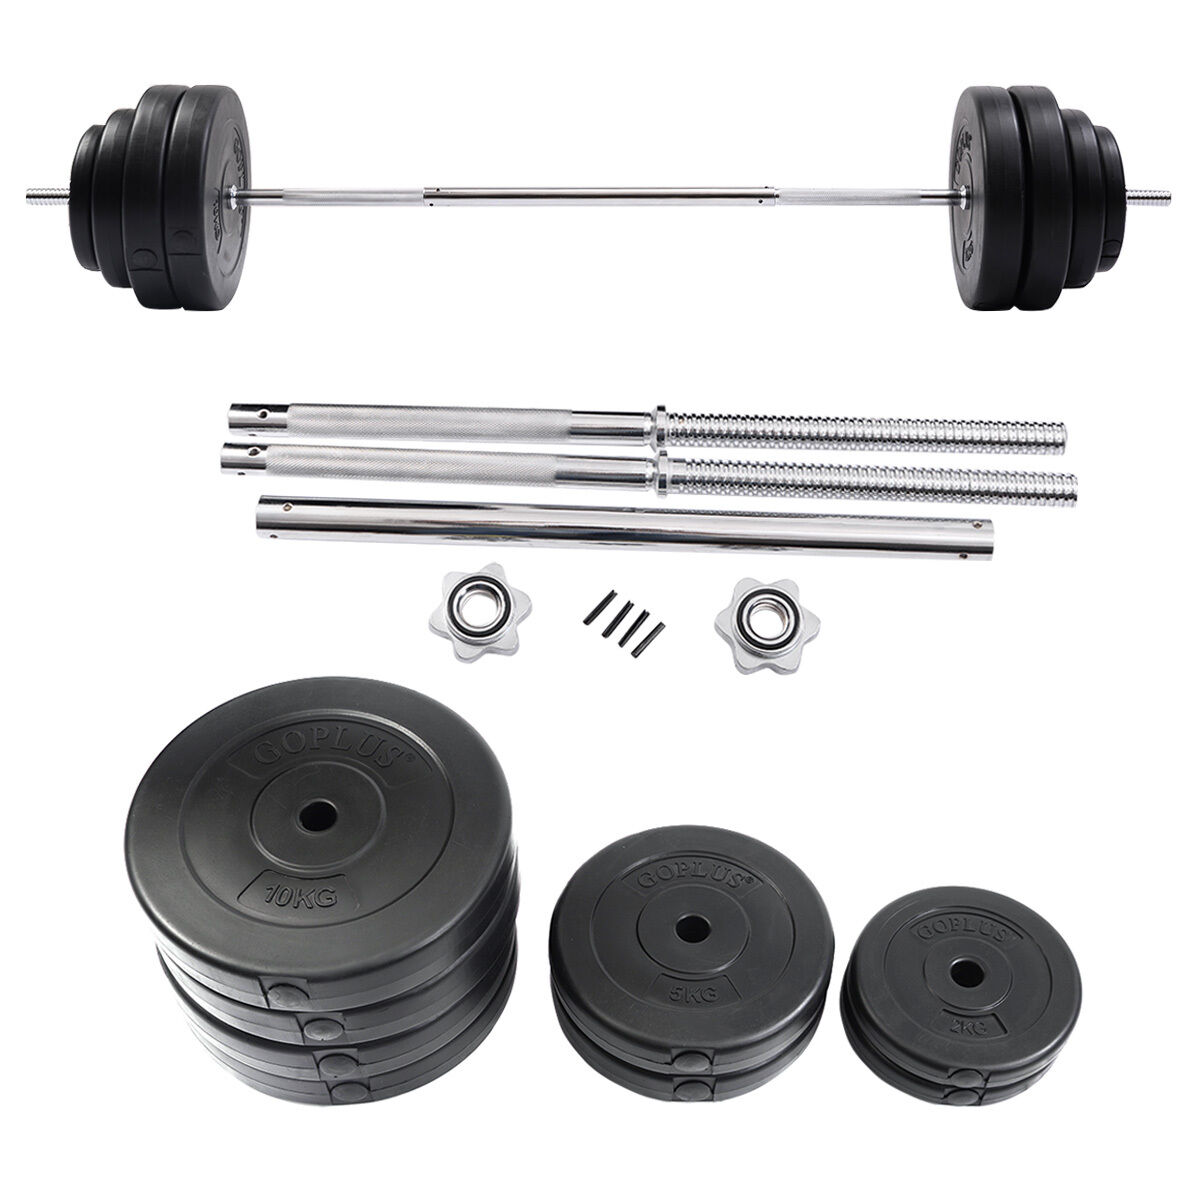 132  LB Barbell Dumbbell Weight Set Gym Lifting Exercise Curl Bar Workout Home  the best after-sale service